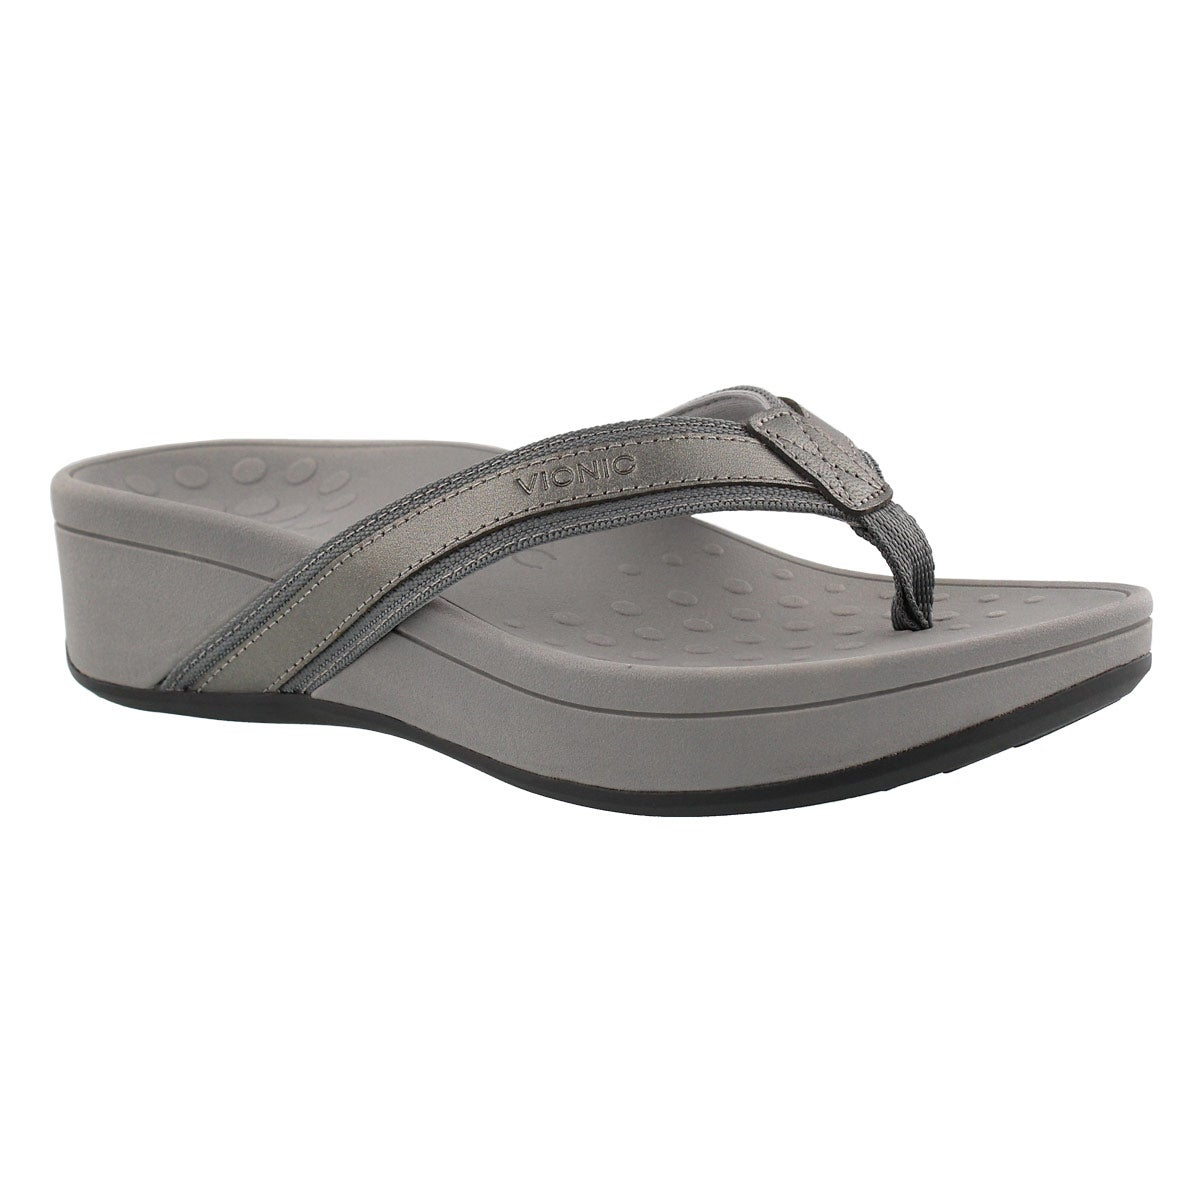 Women's HIGH TIDE pwtr arch support wedge sandals